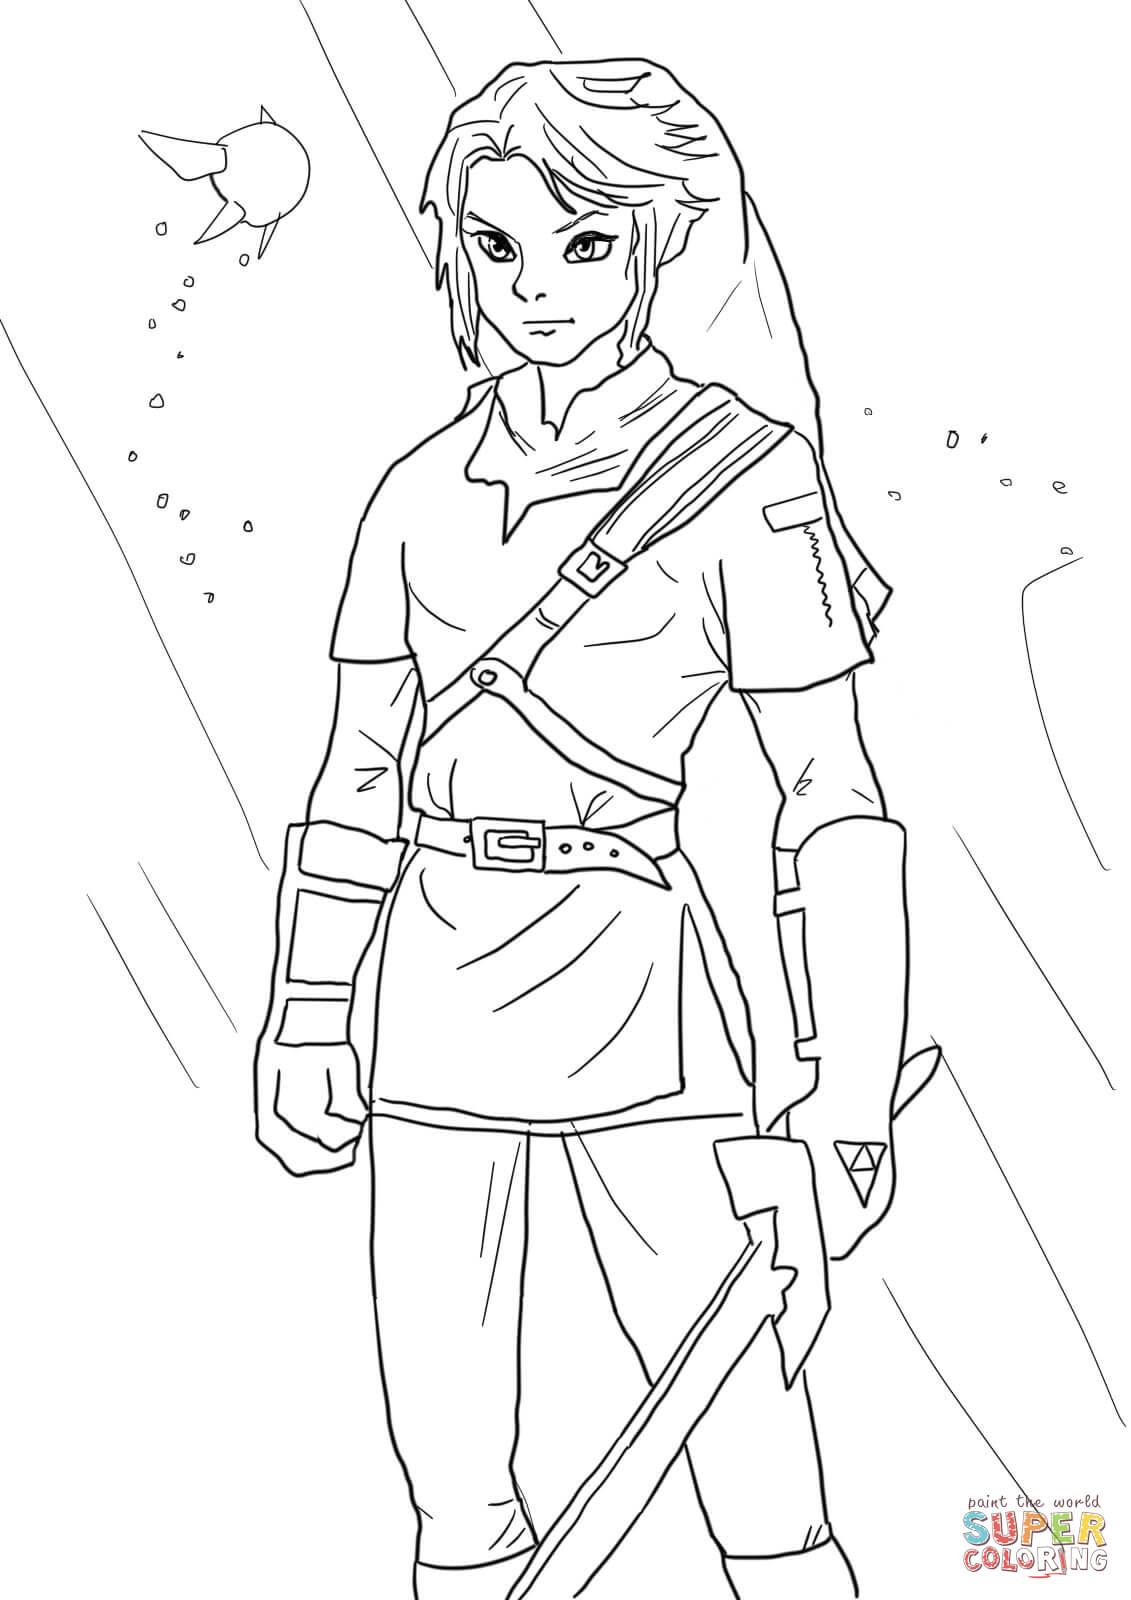 Coloriage - Link De La Légende De Zelda | Coloriages À concernant Coloriage Zelda Twilight Princess